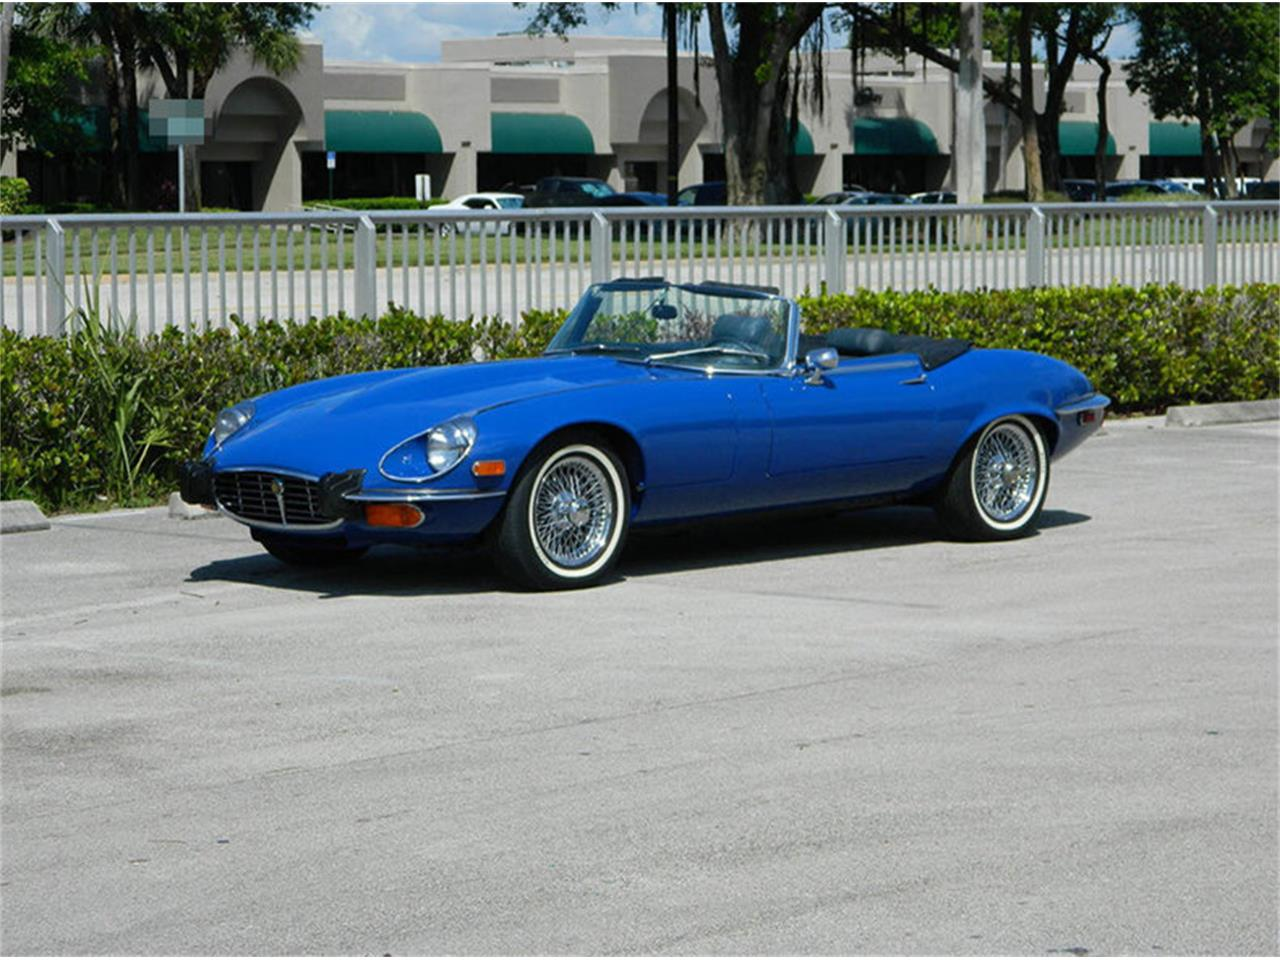 Large Picture of Classic 1973 XKE Auction Vehicle Offered by GAA Classic Cars Auctions - NO0U